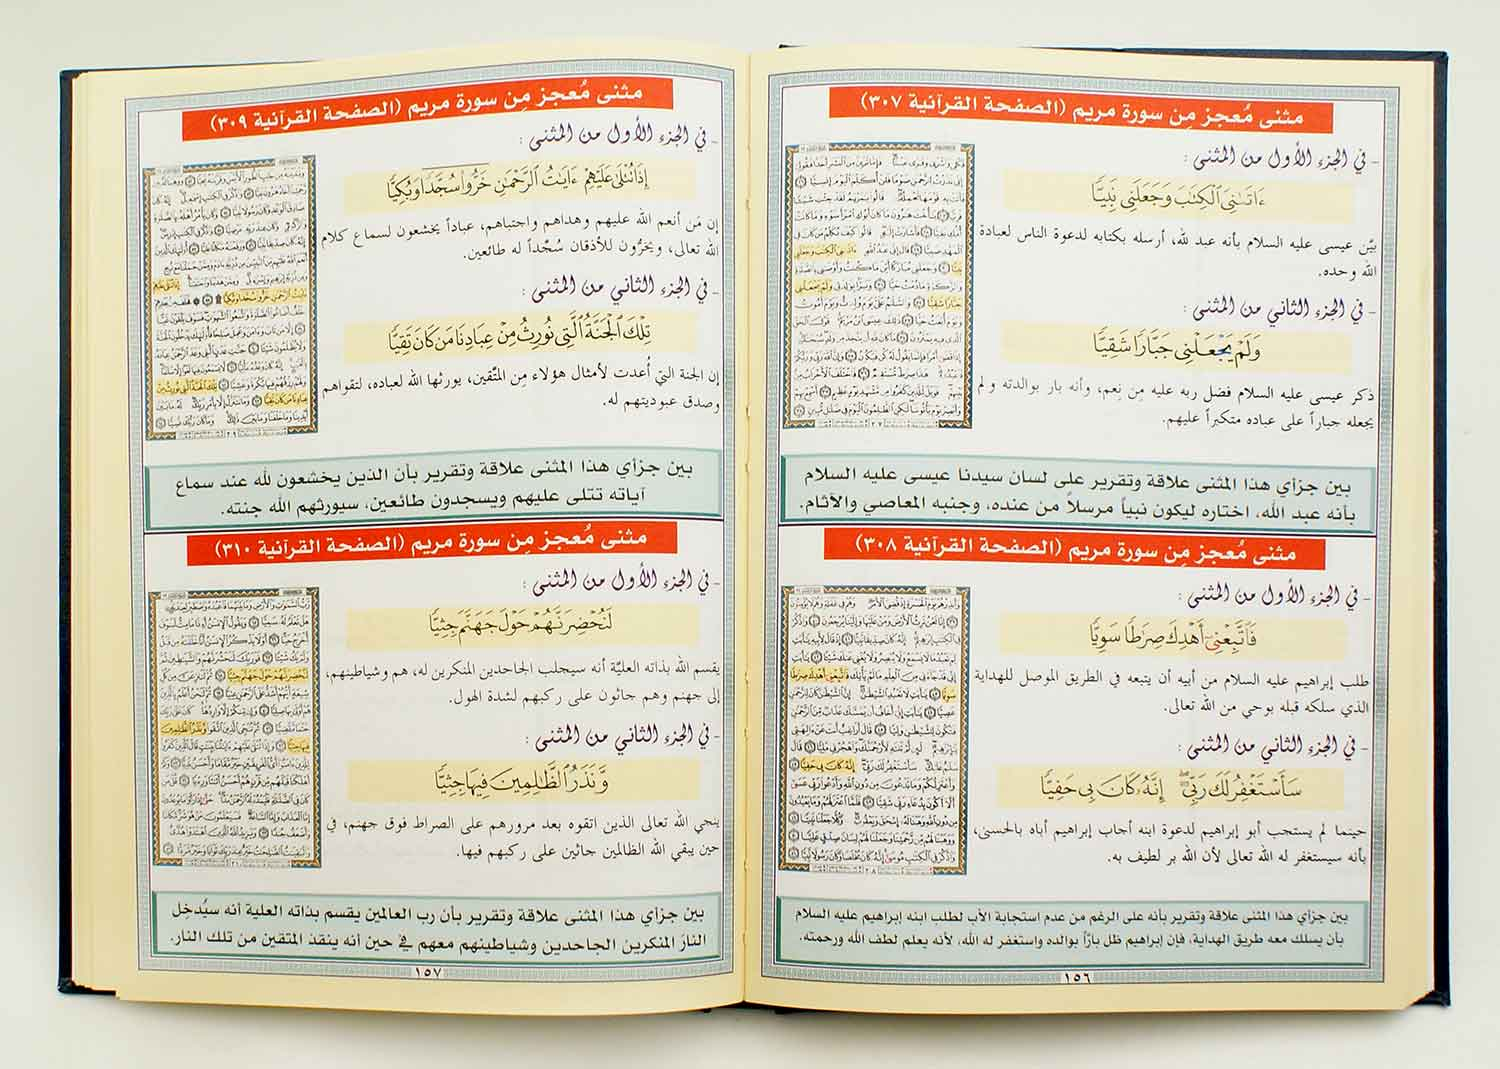 Miraculus Dual Verses in the Quranic Pages in Arabic